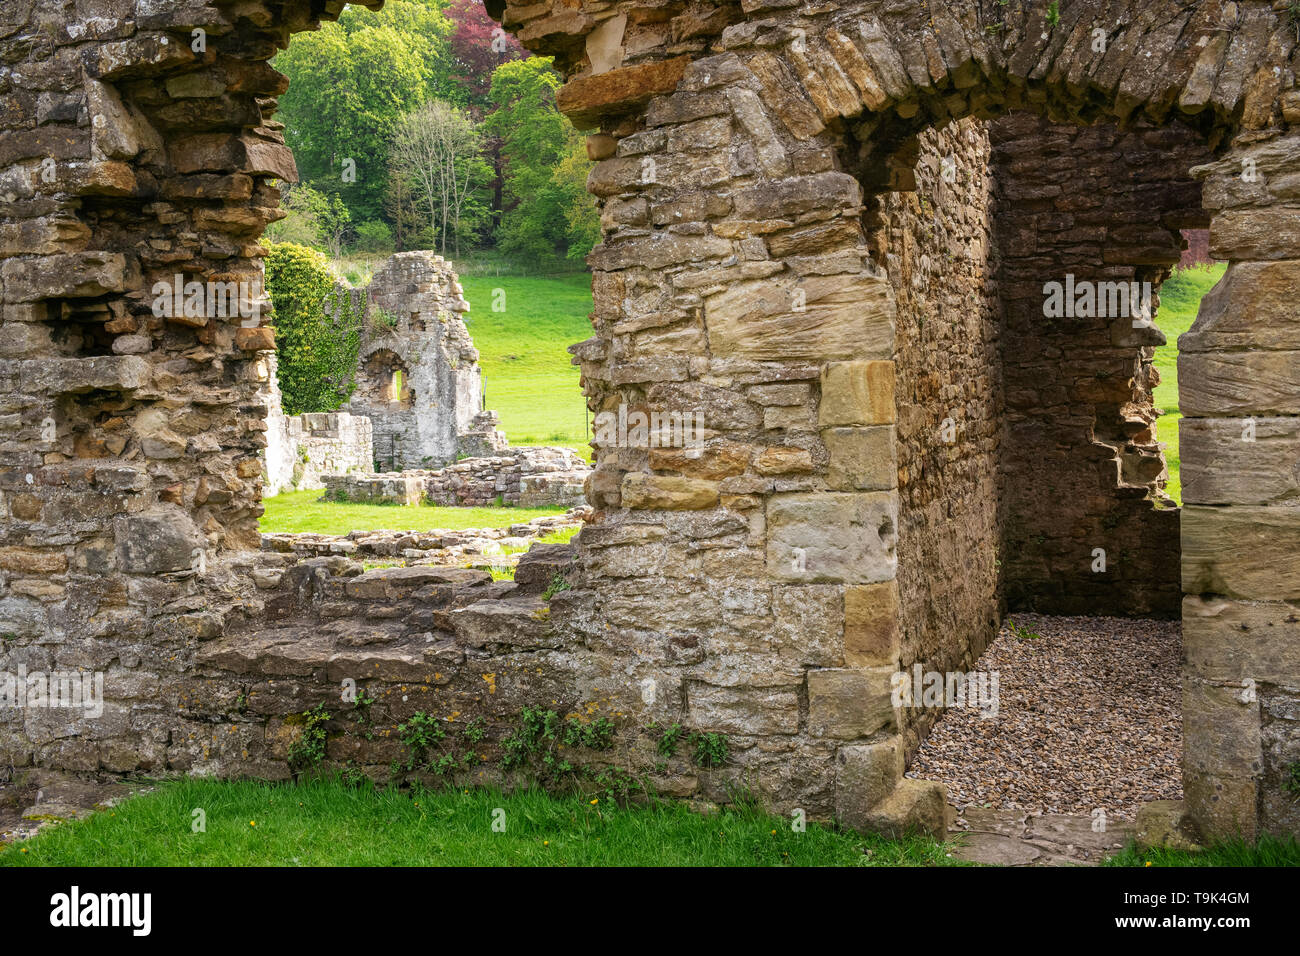 The atmospheric remains of Easy Abbey, Richmond, Yorkshire, UK - Stock Image